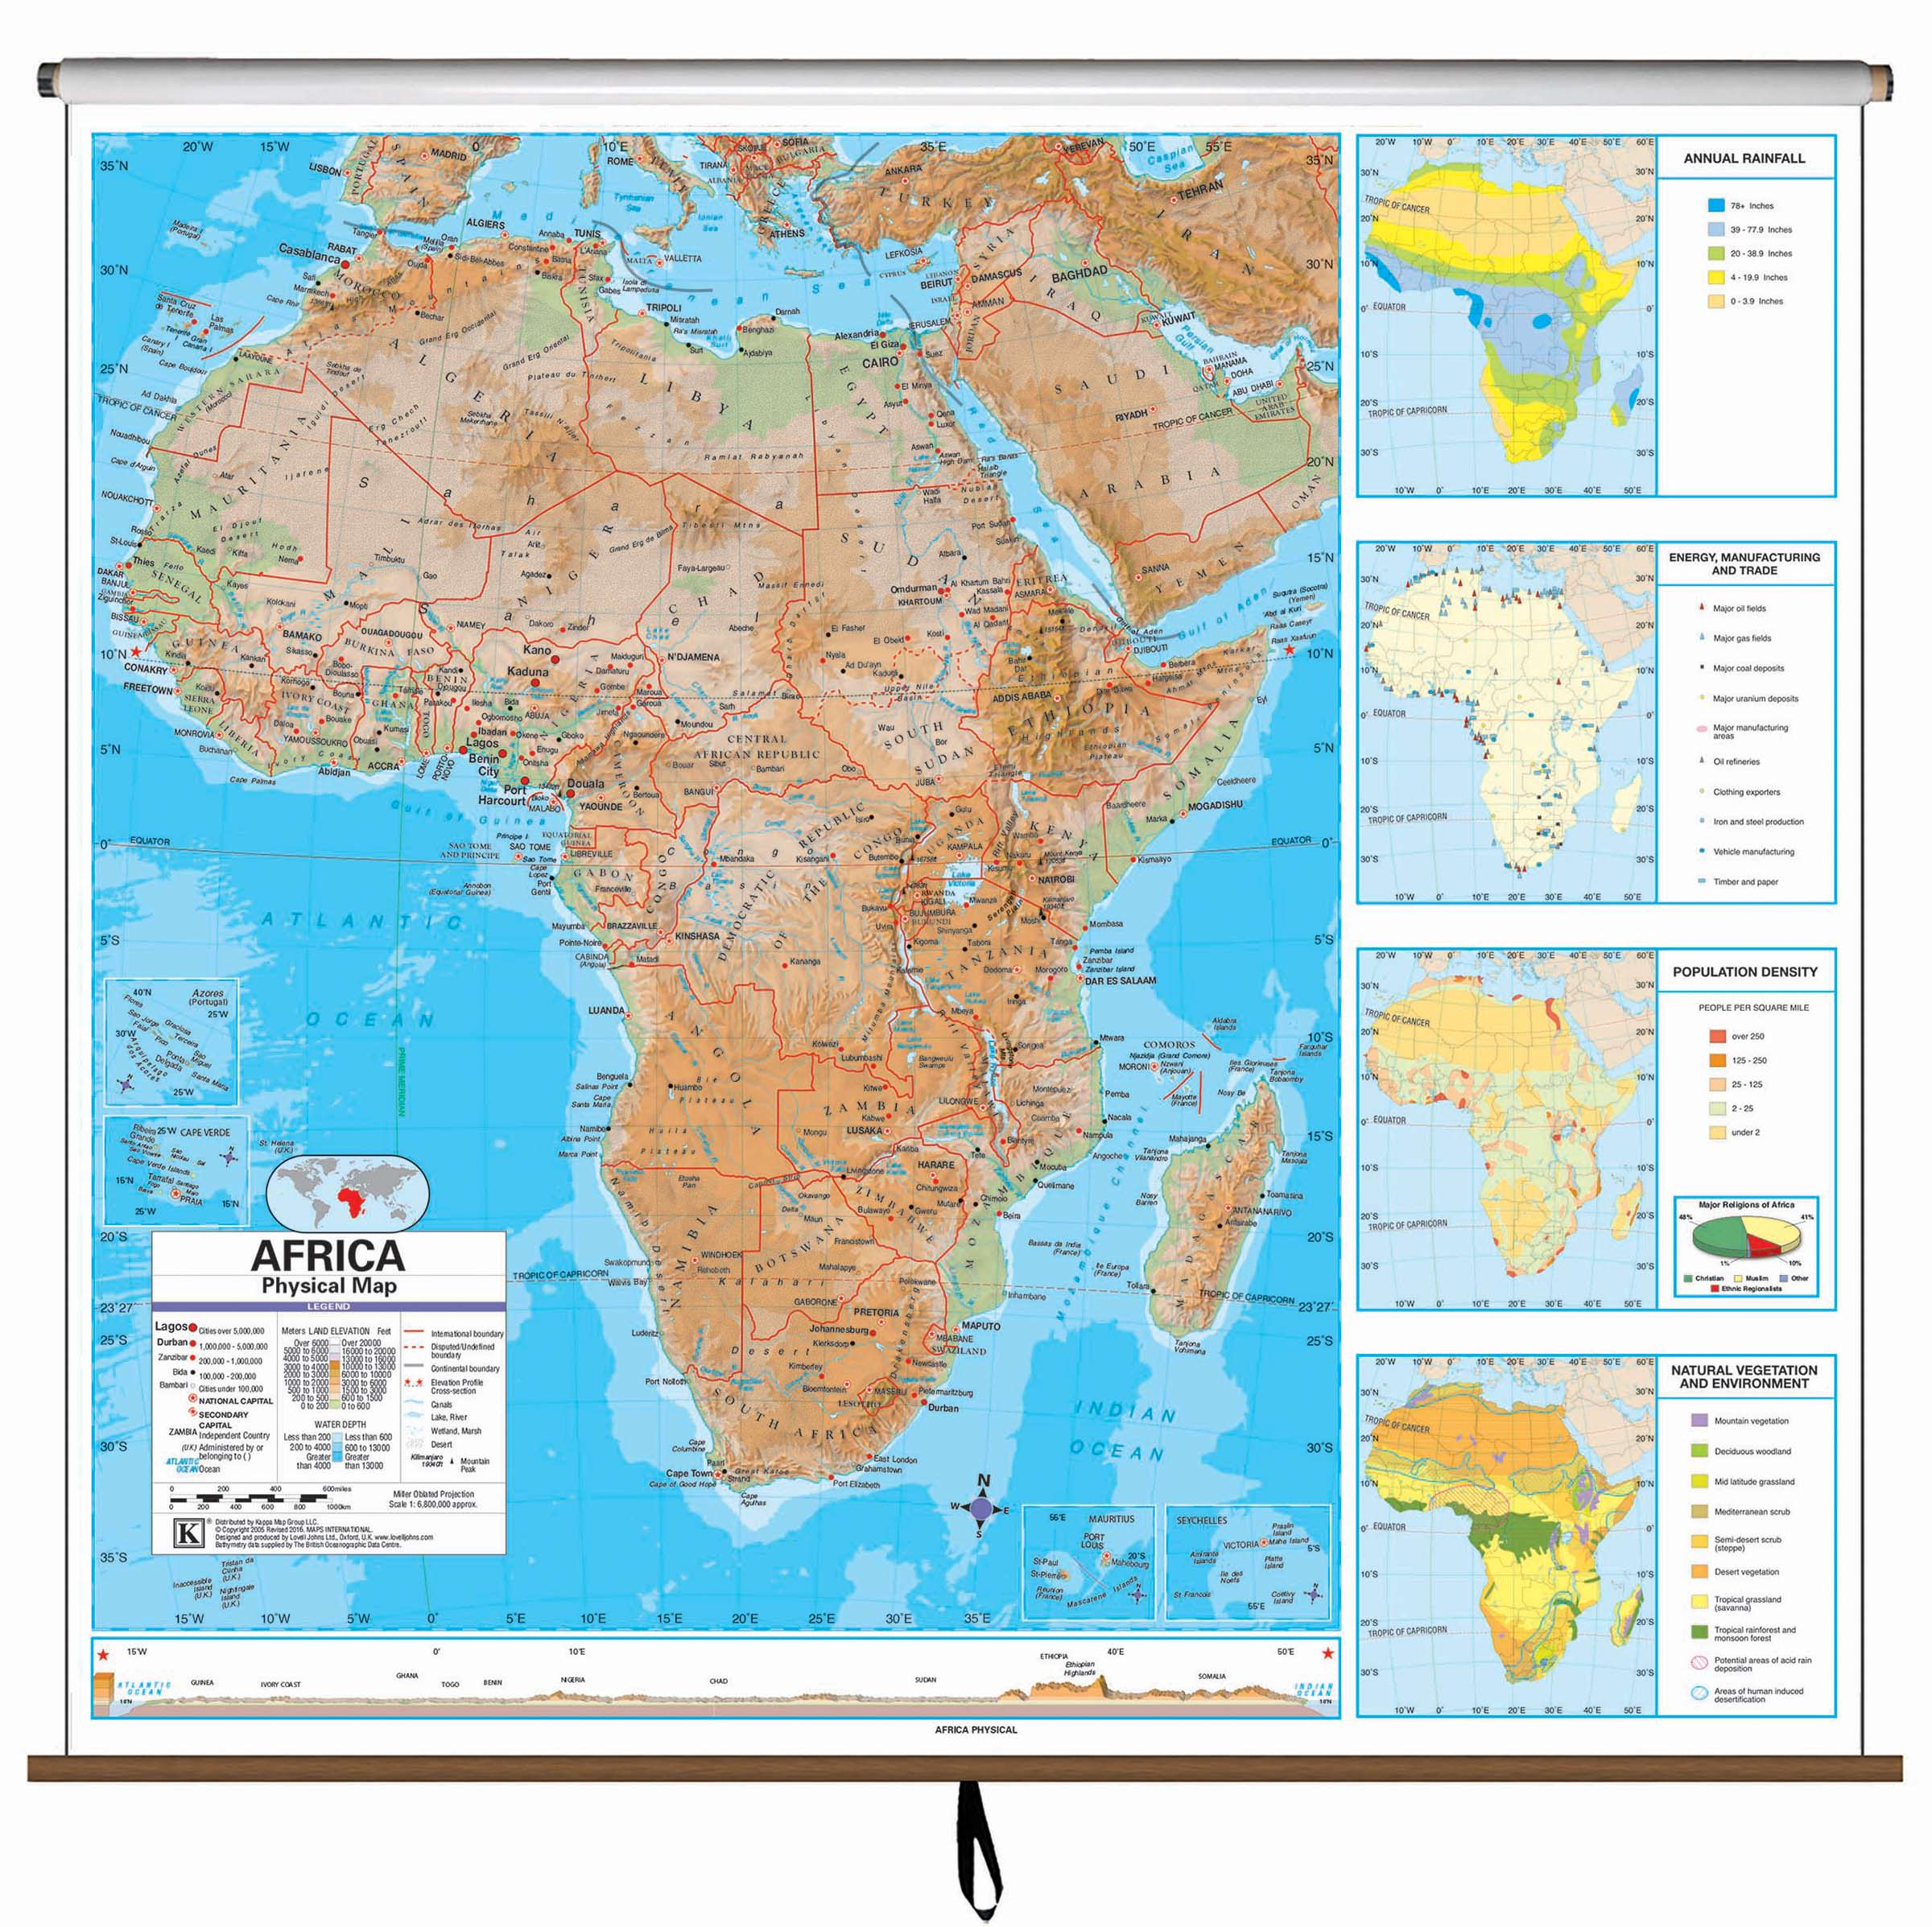 Africa Advanced Physical Clroom Wall Map – KAPPA MAP GROUP on bordeaux on world map, manama on world map, riyadh on world map, sanaa on world map, bahrain island on world map, thessaloniki on world map, cincinnati on world map, fuzhou on world map, jeddah on world map, gdansk on world map, dushanbe on world map, miami on world map, kano on world map, qatar on world map, laccadive sea on world map, pristina on world map, bhutan on world map, makkah on world map, belize city on world map, yerevan on world map,